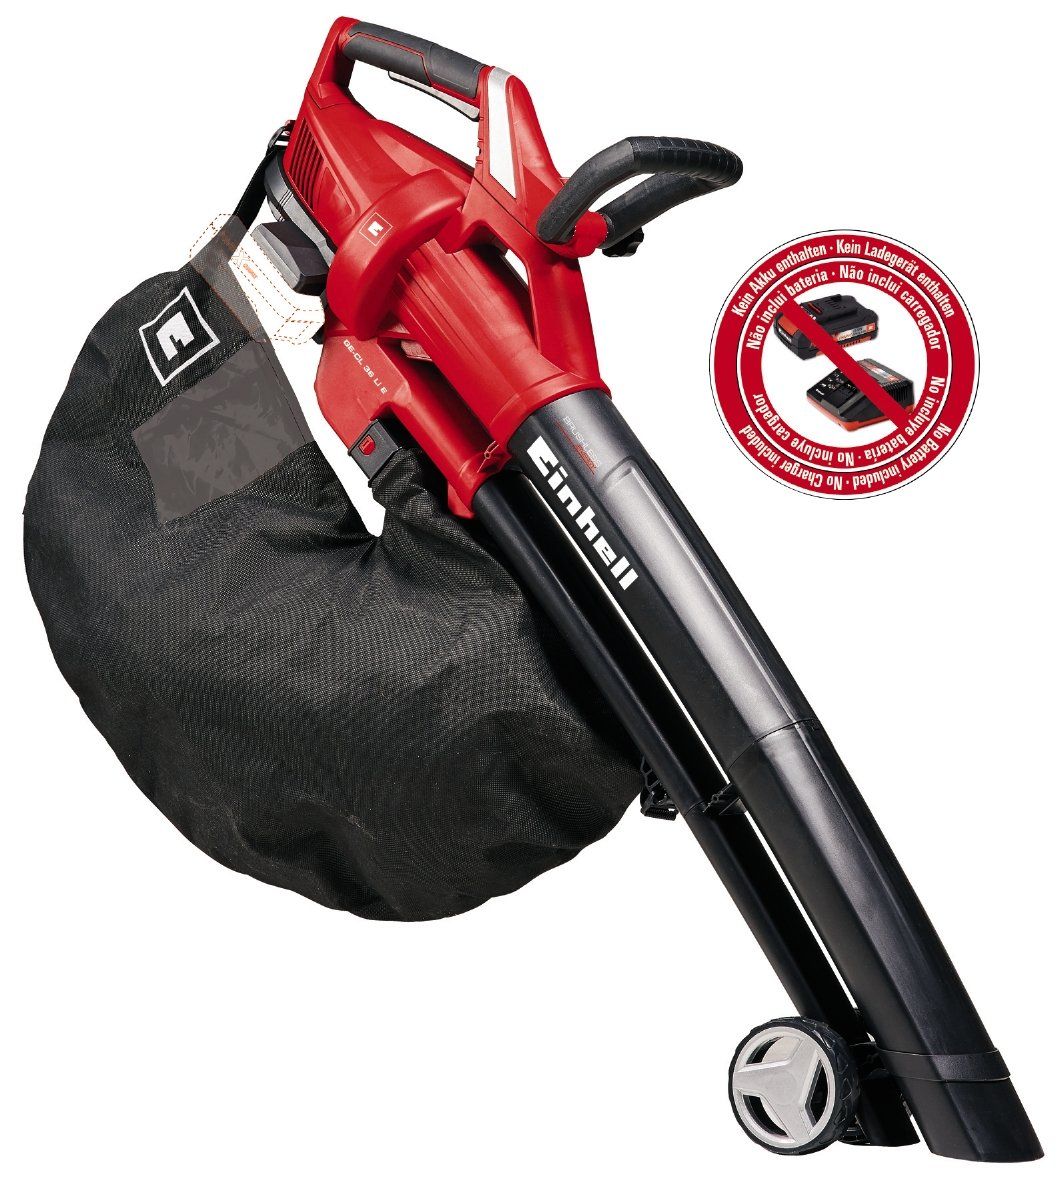 Einhell GE-CL 36 LI E Solo Power X-Change Cordless Leaf Blower, 36 V, Red 3433600